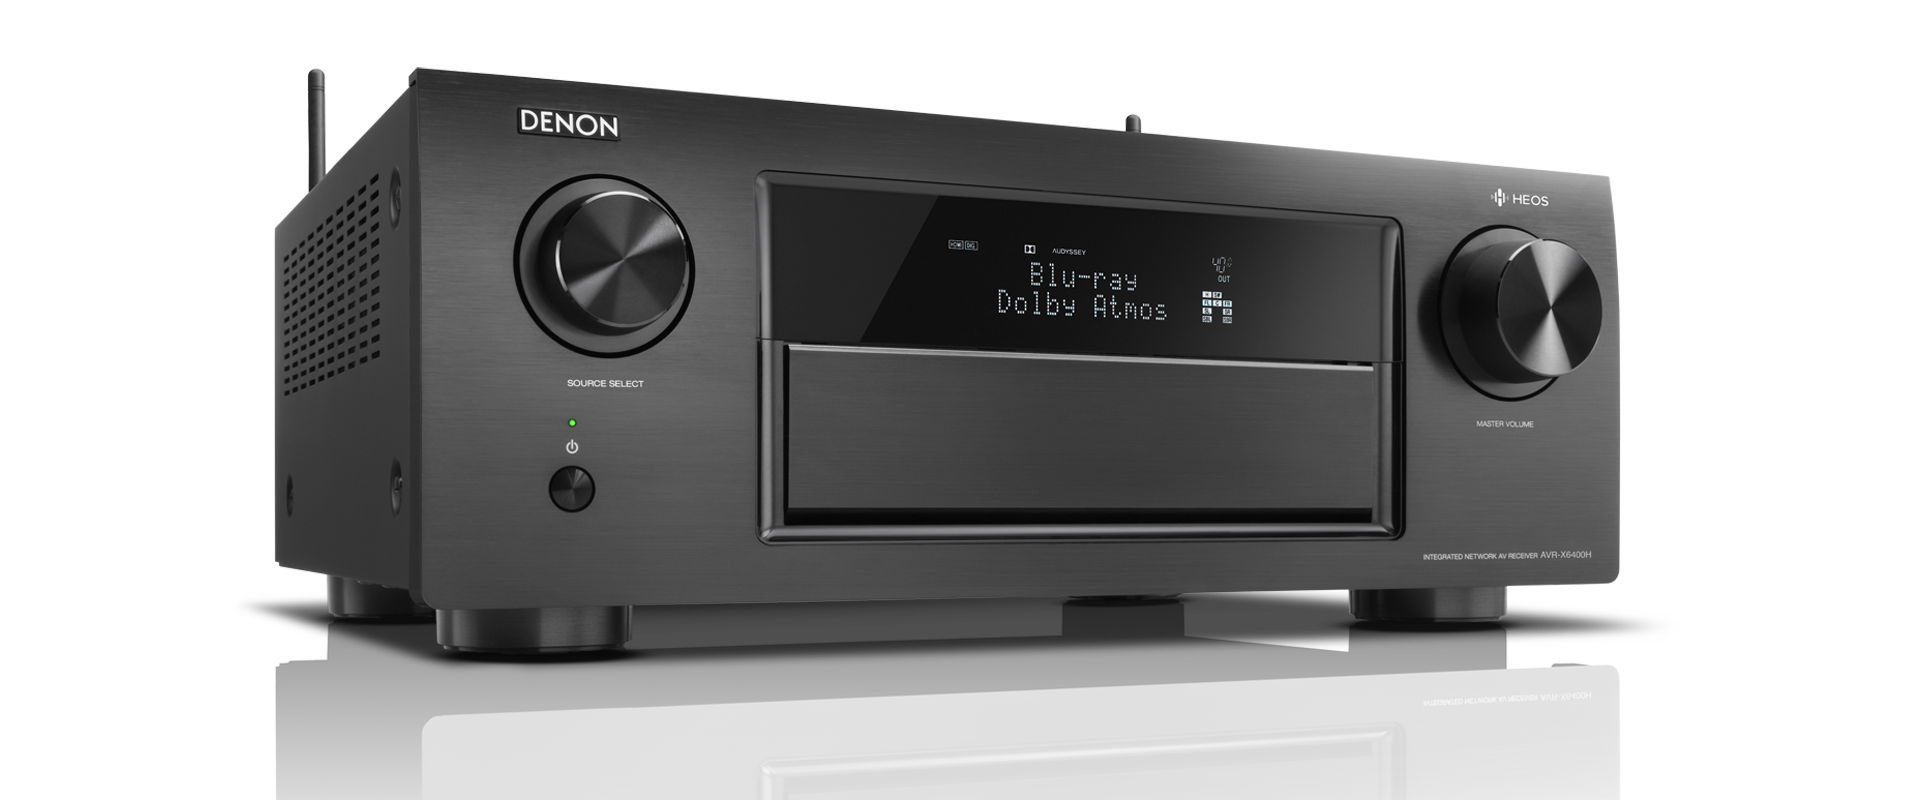 https://www.grobi.tv/media/image/Denon-AVR-X6400H-E2-product-right.png